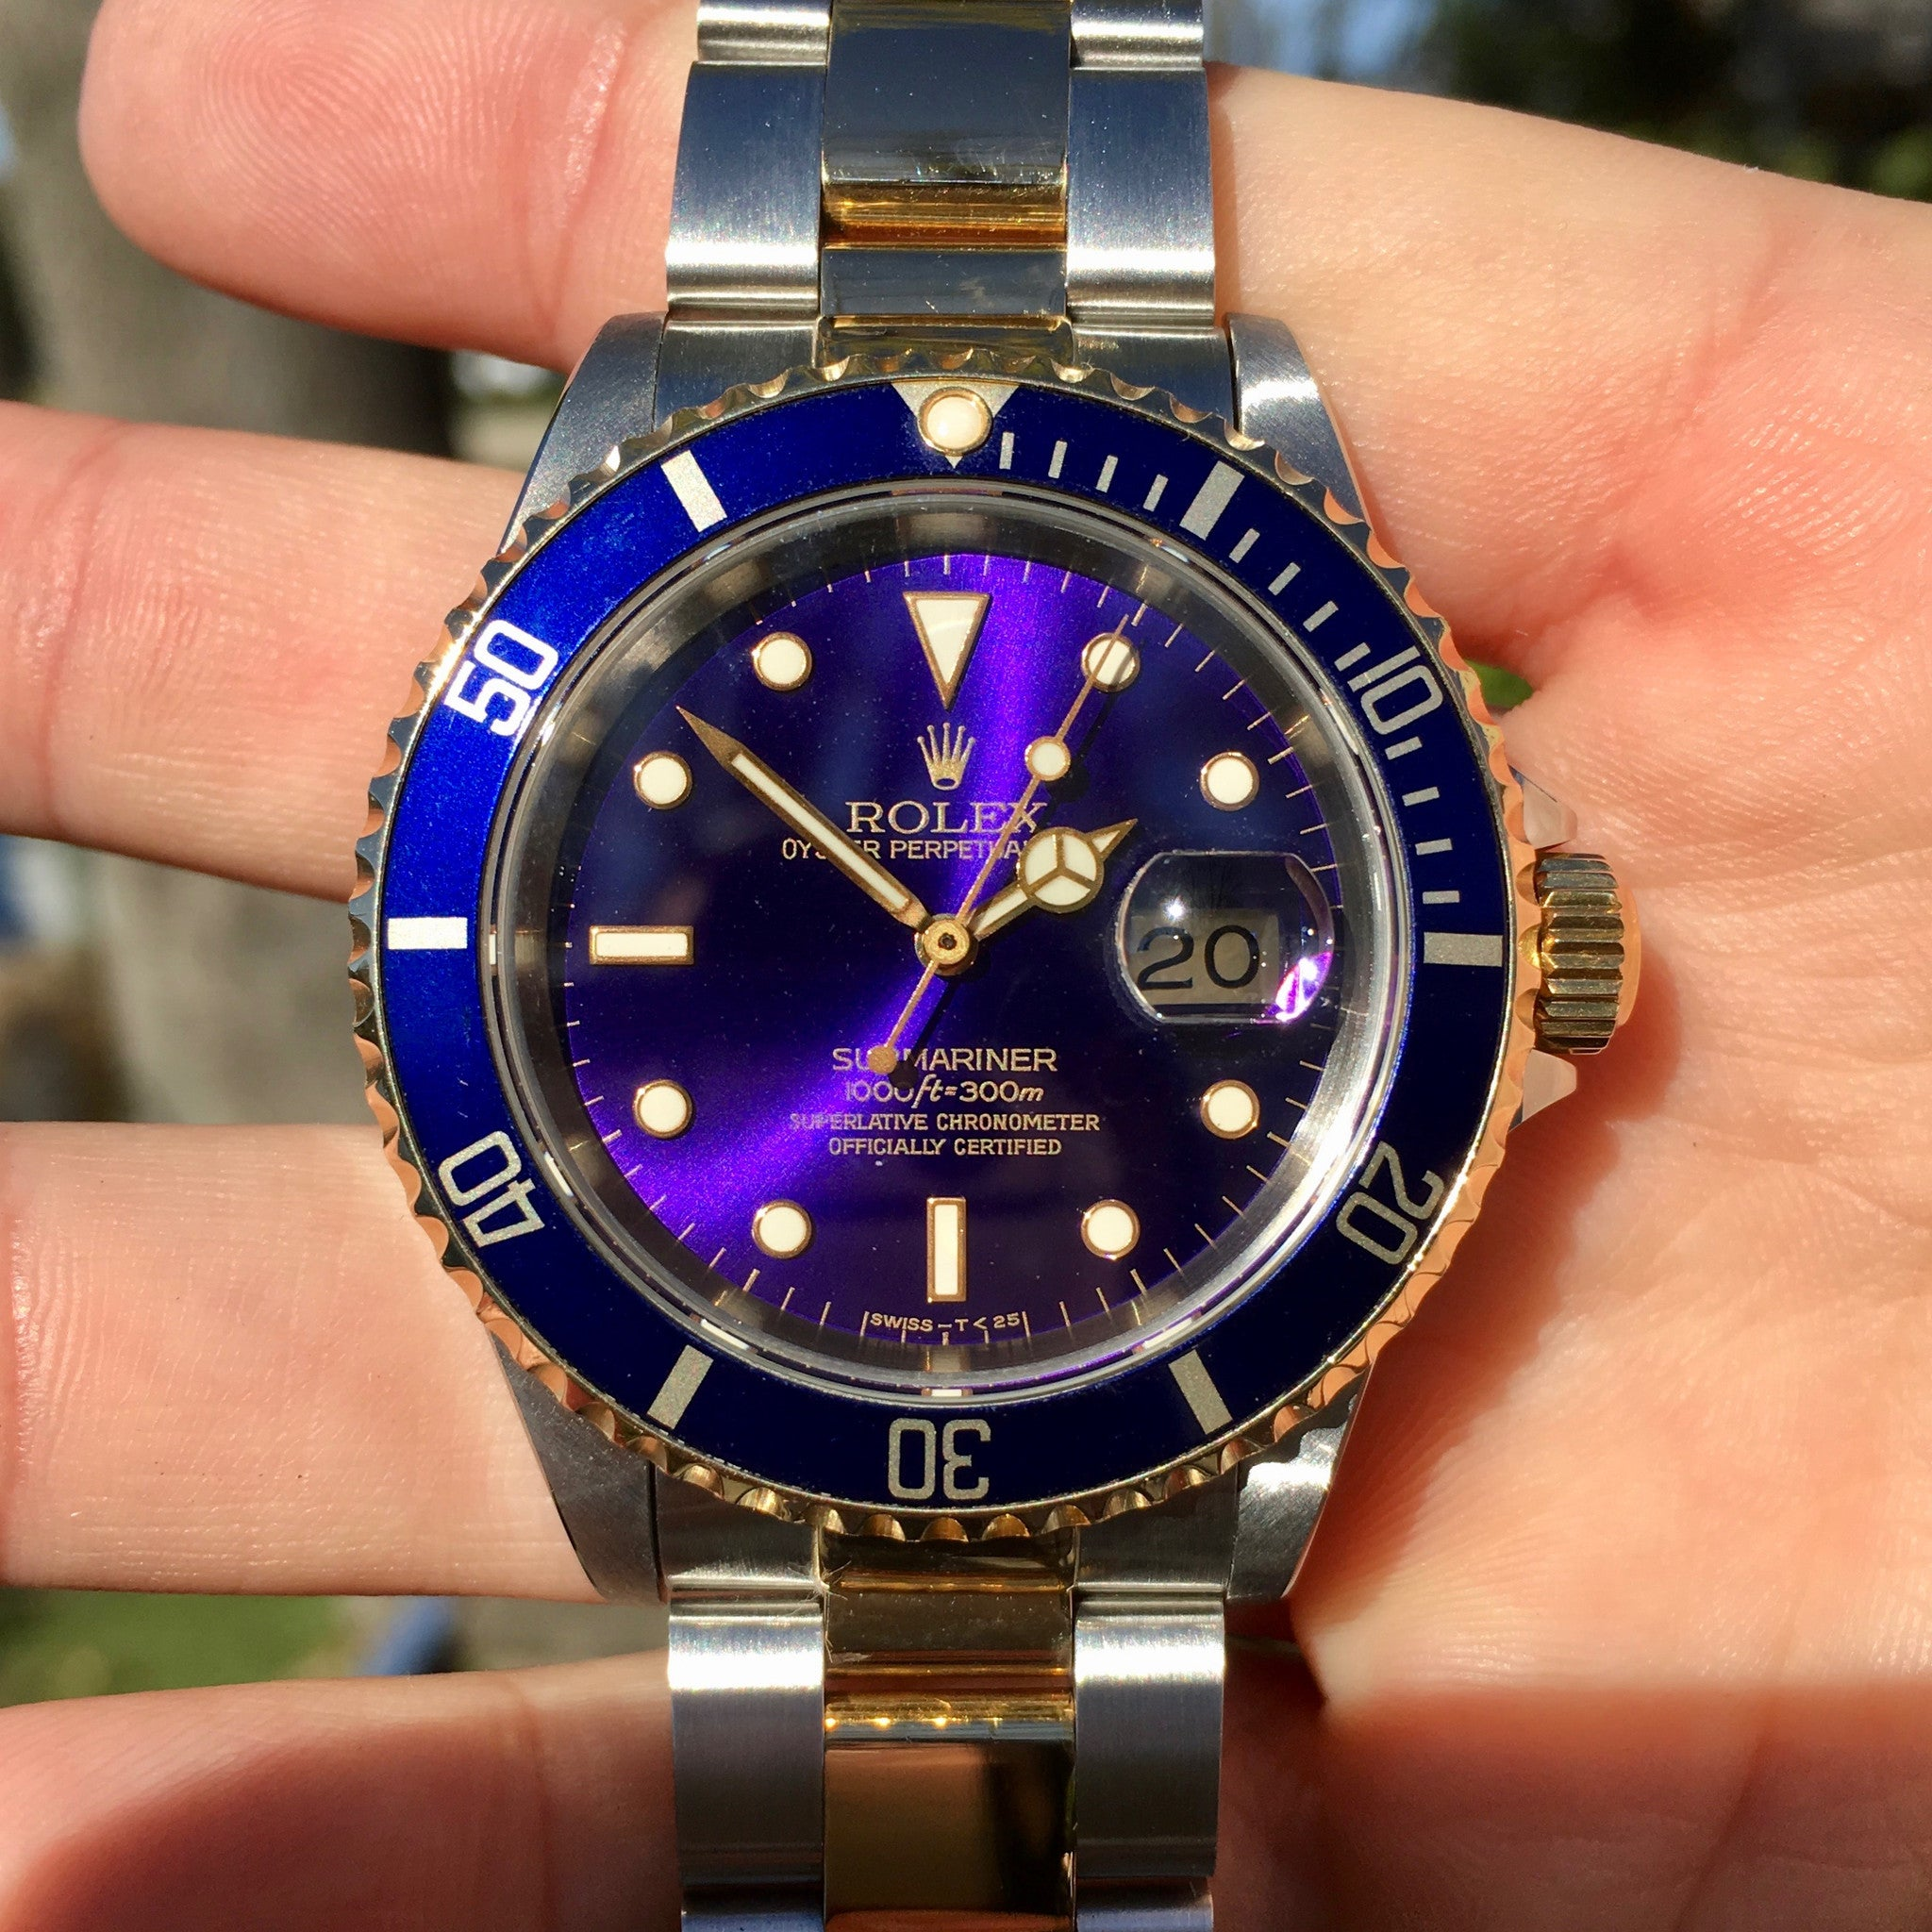 Rolex Submariner 16613 Two Tone Purple Color Change Steel